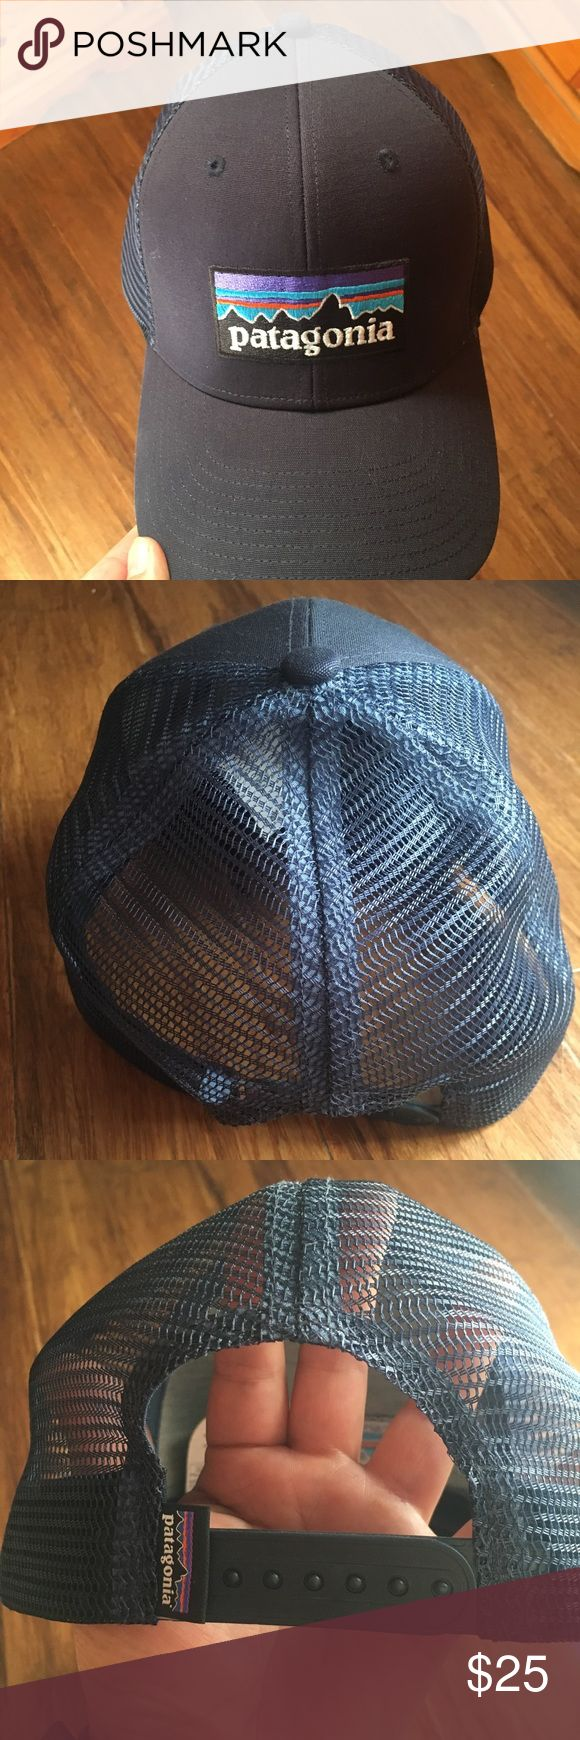 Patagonia SnapBack blue hat Used once Patagonia navy blue SnapBack hat. In really good condition. Patagonia Accessories Hats